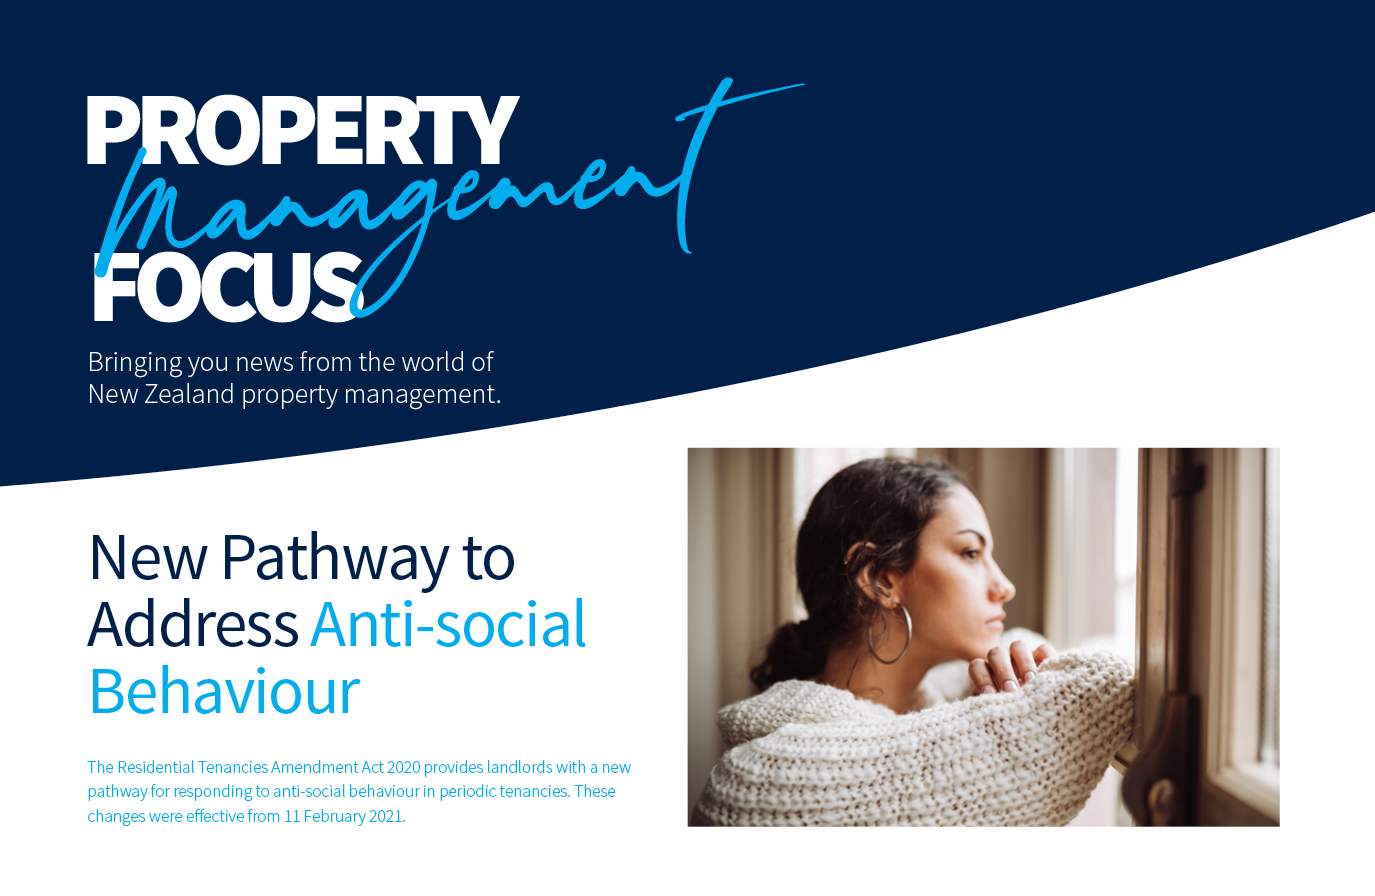 Property Management Focus May 2021